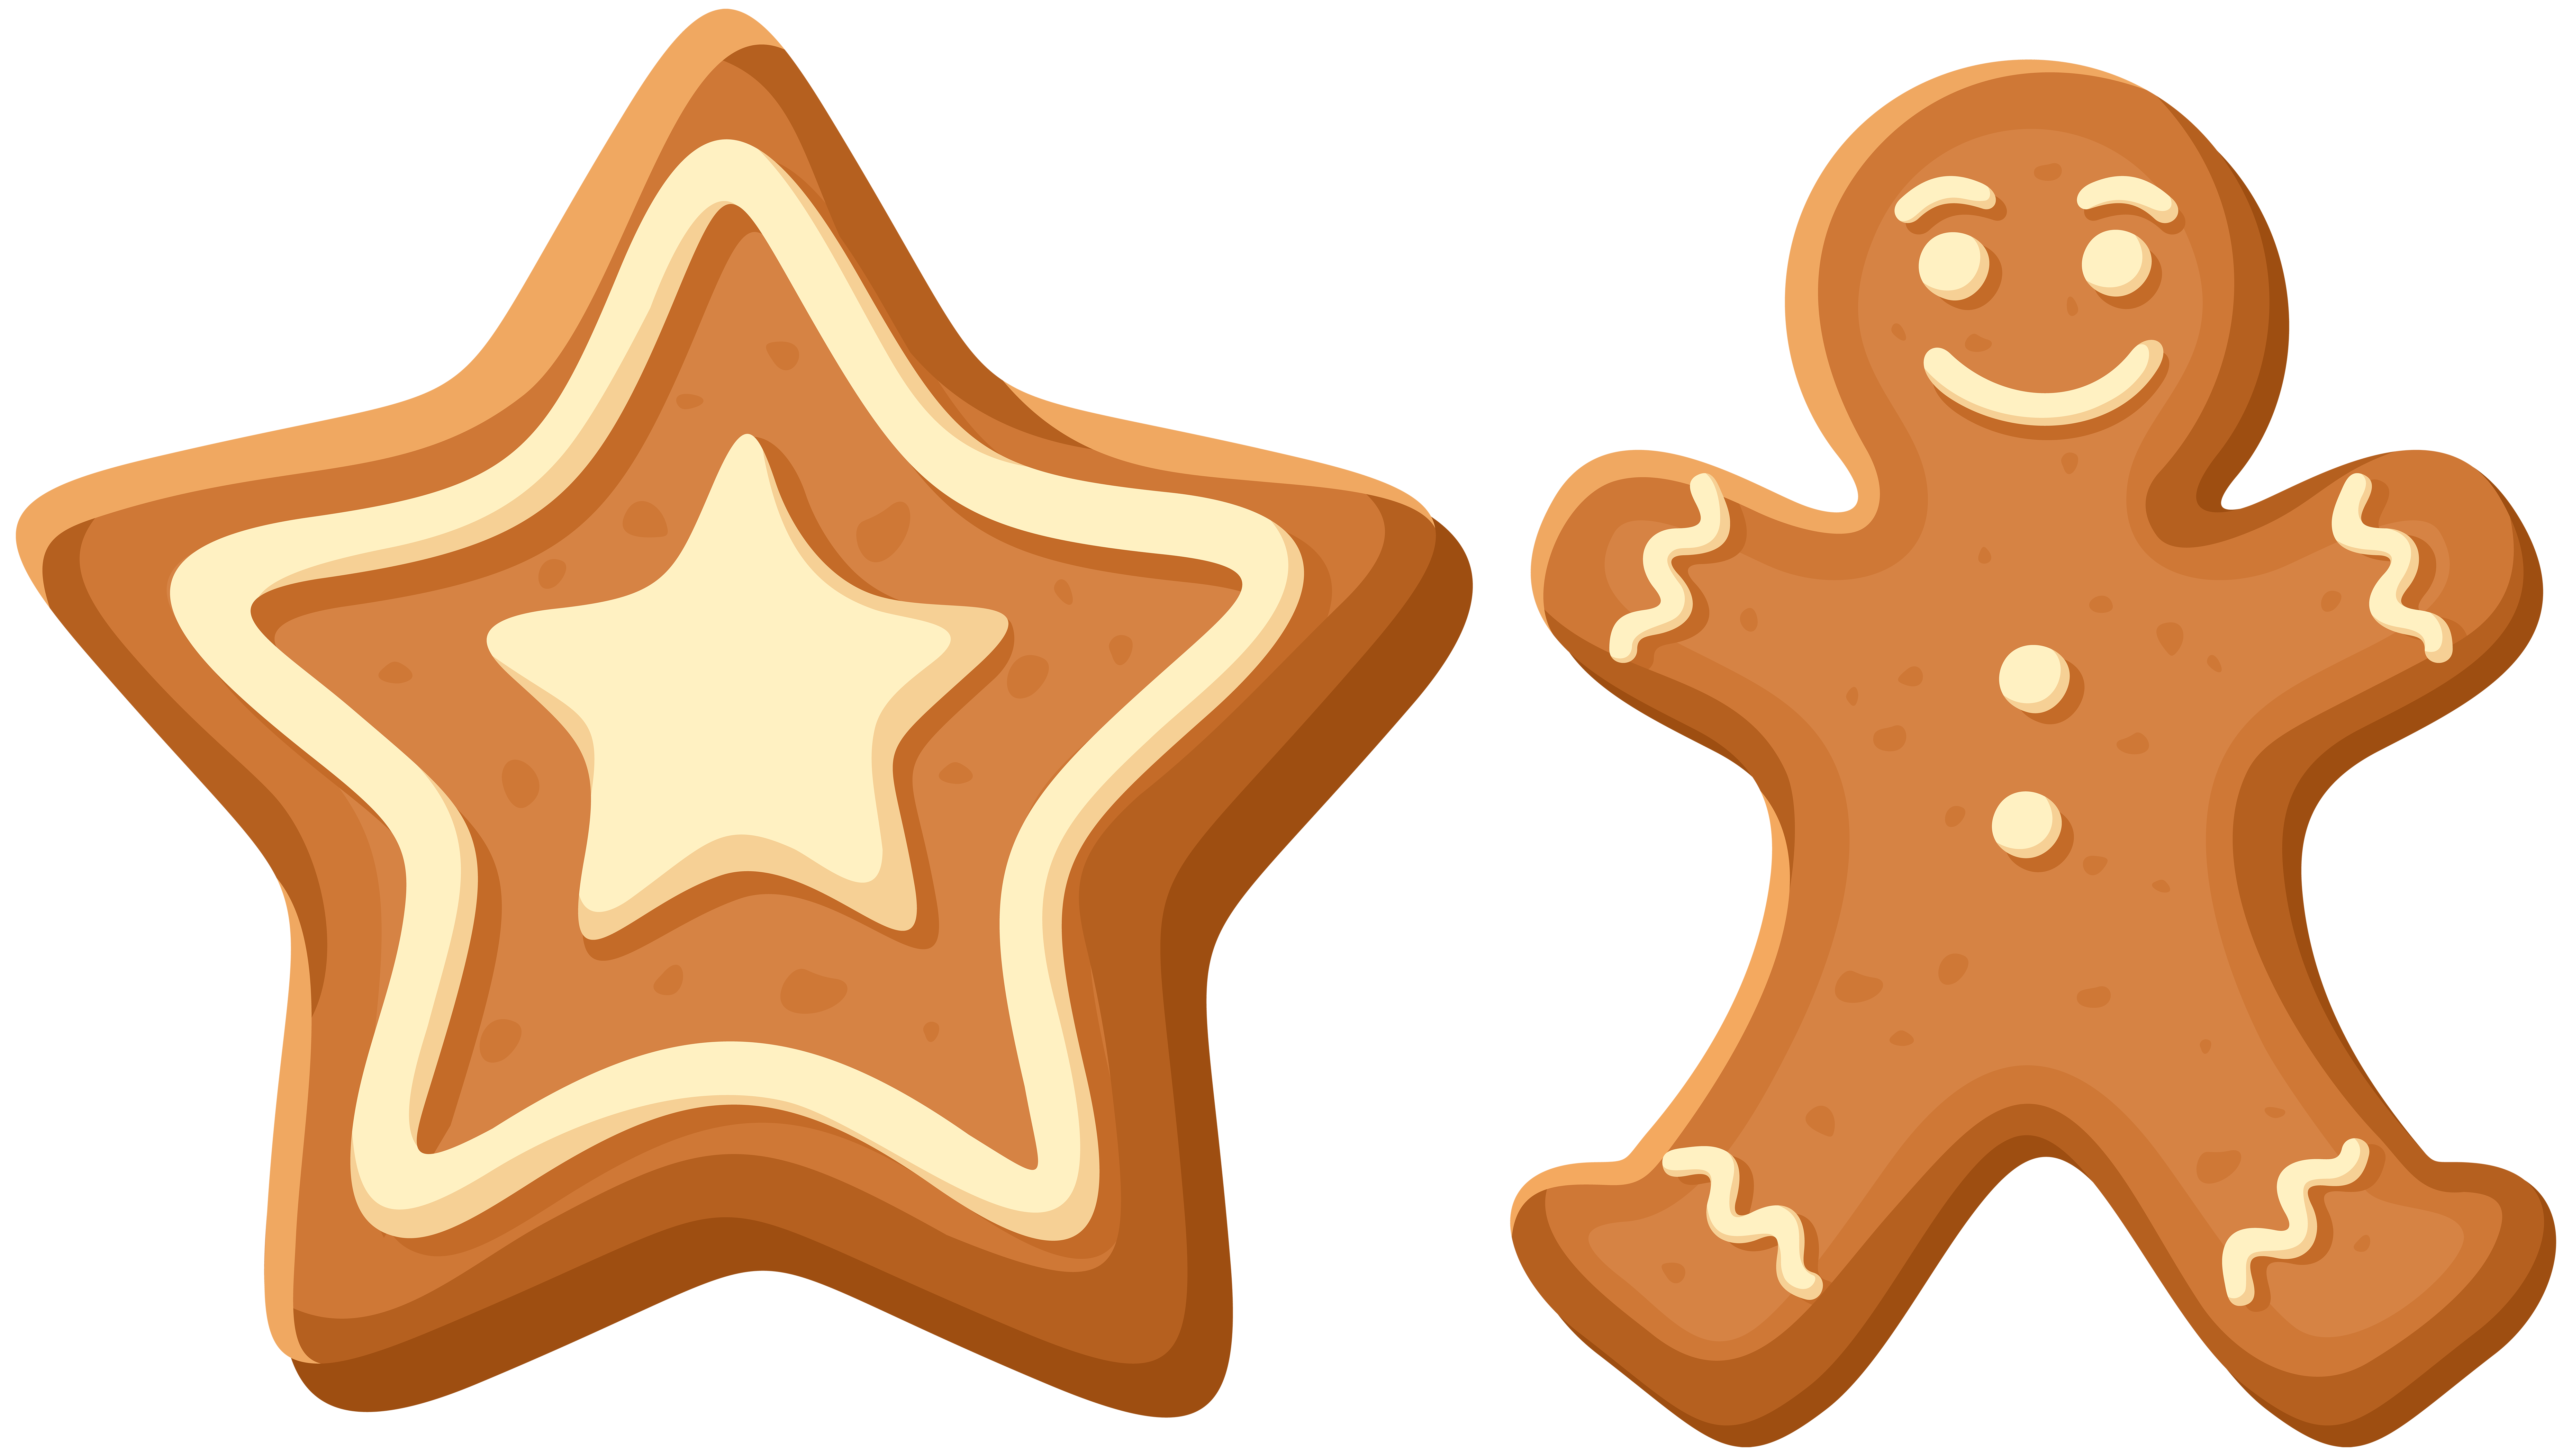 8000x4530 Christmas Gingerbread Cookies Png Clip Artu200b Gallery Yopriceville